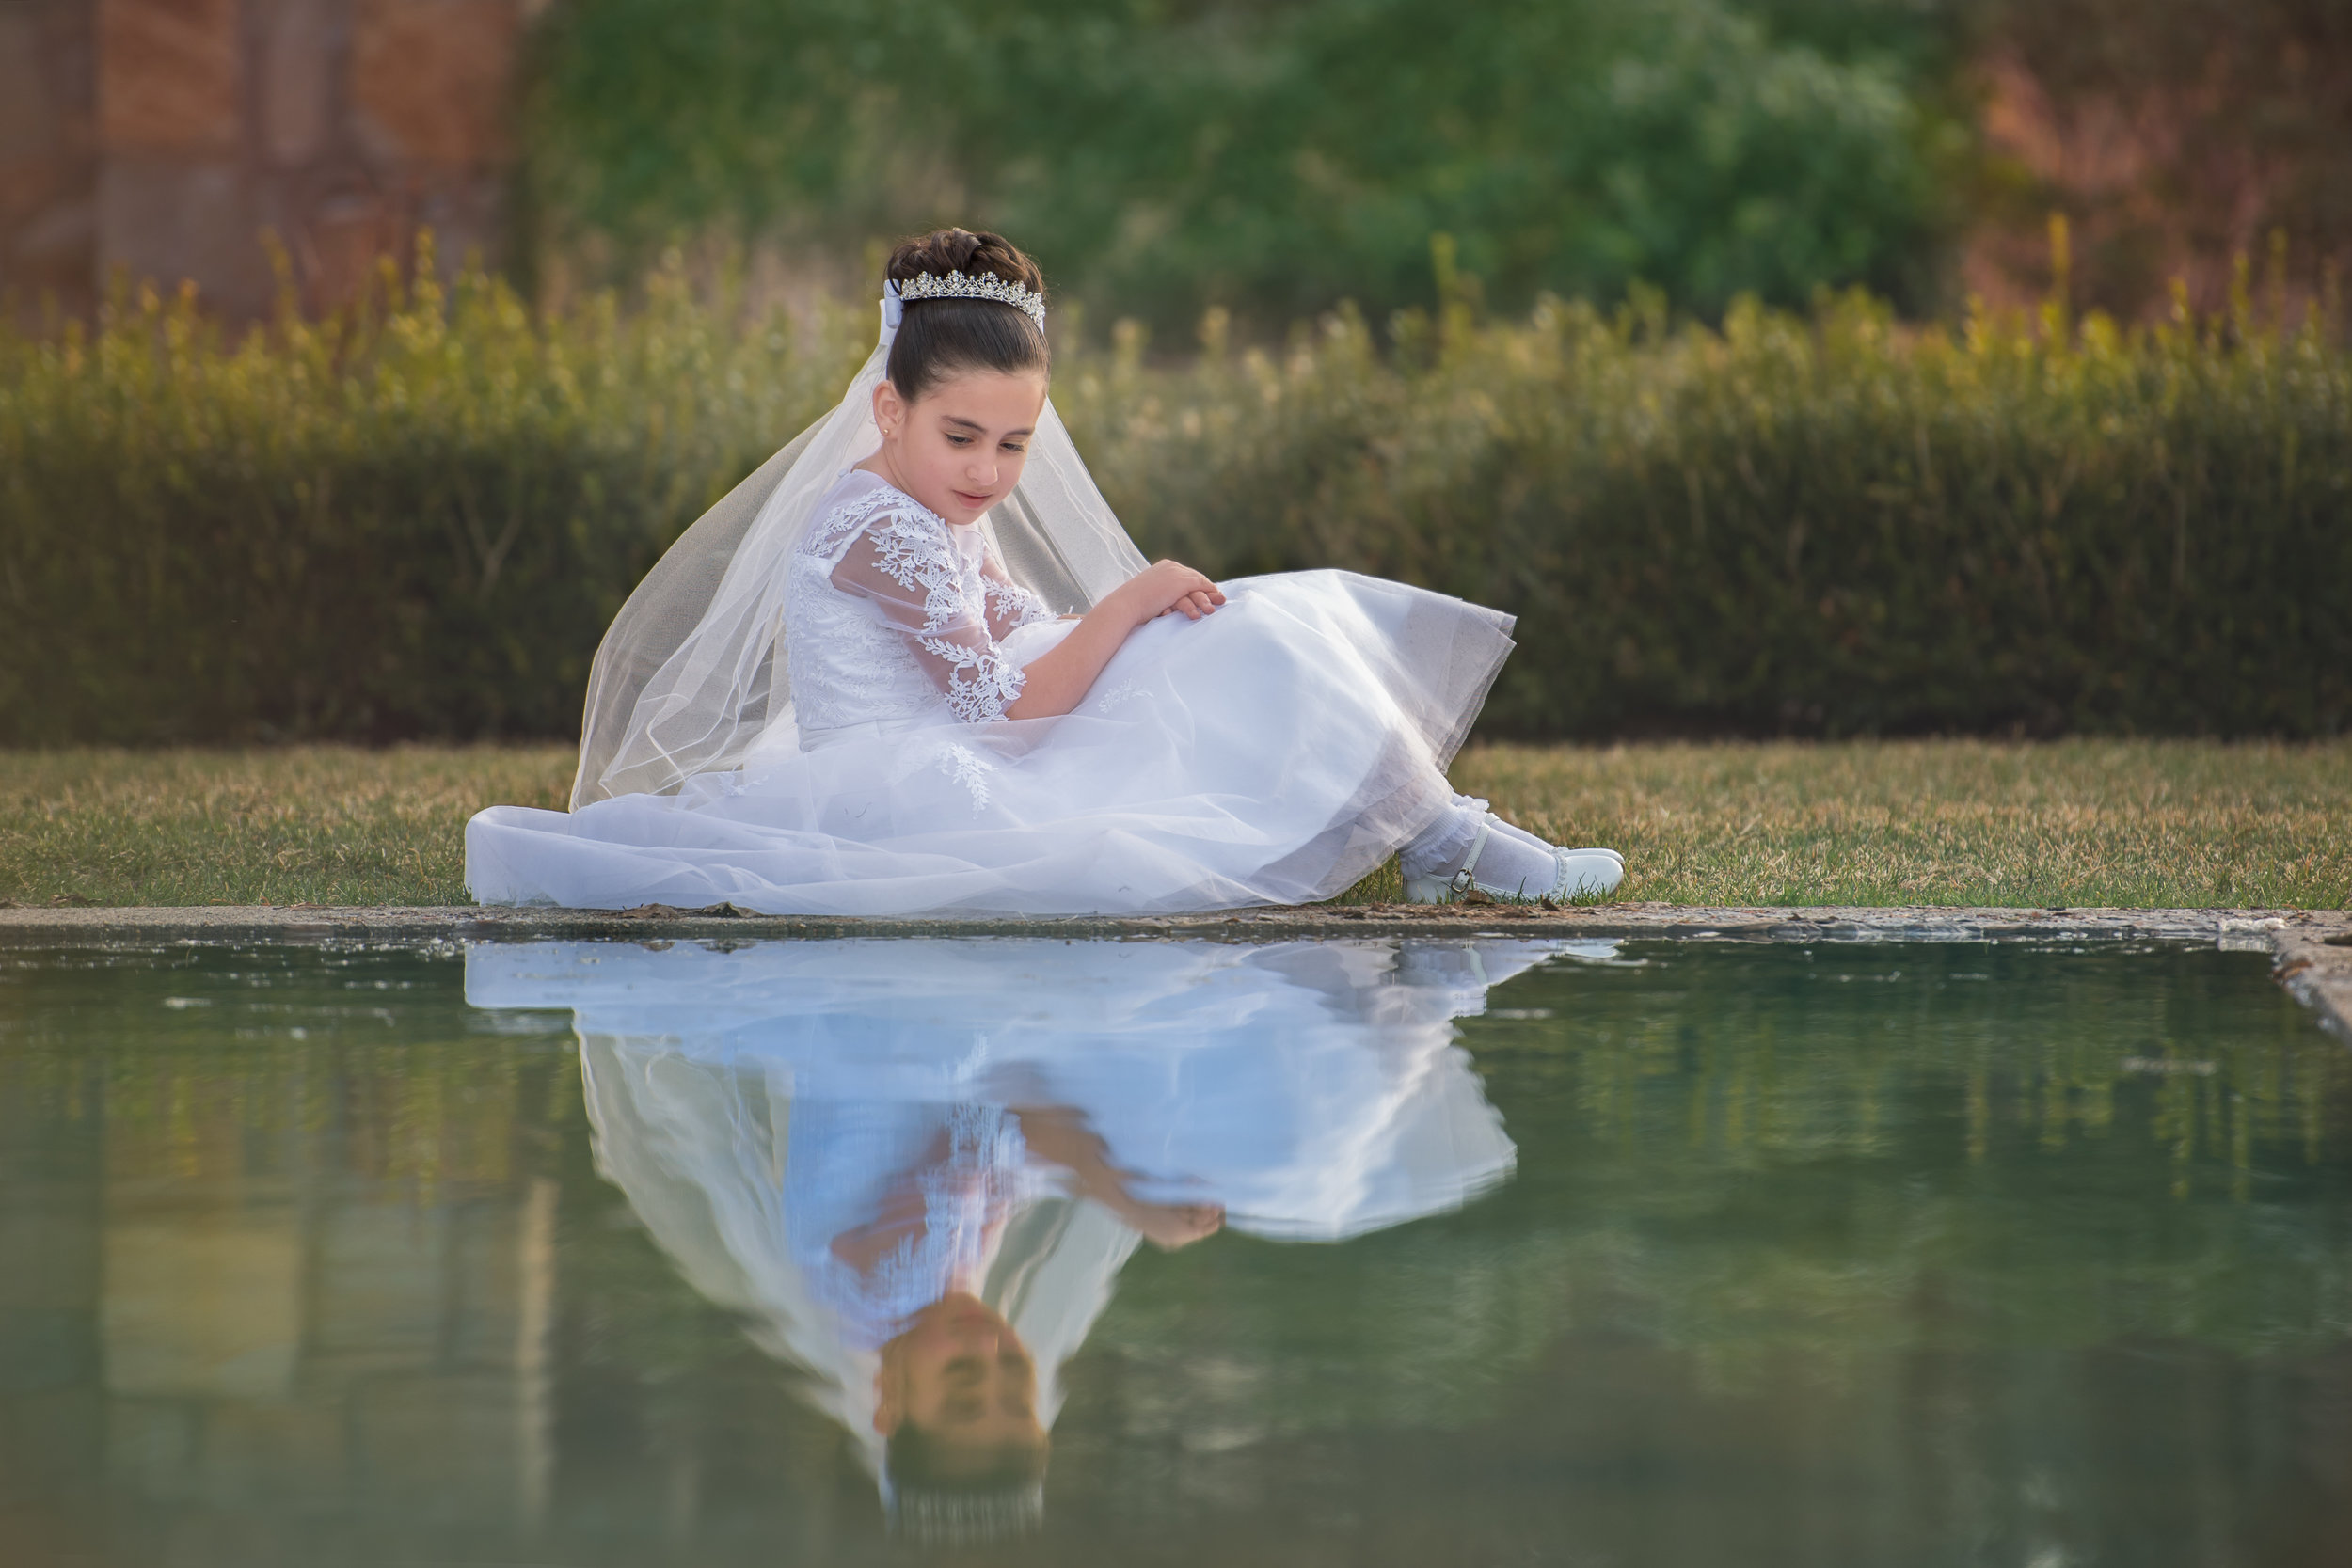 Girl in First Communion Dress by Reflecting Pool